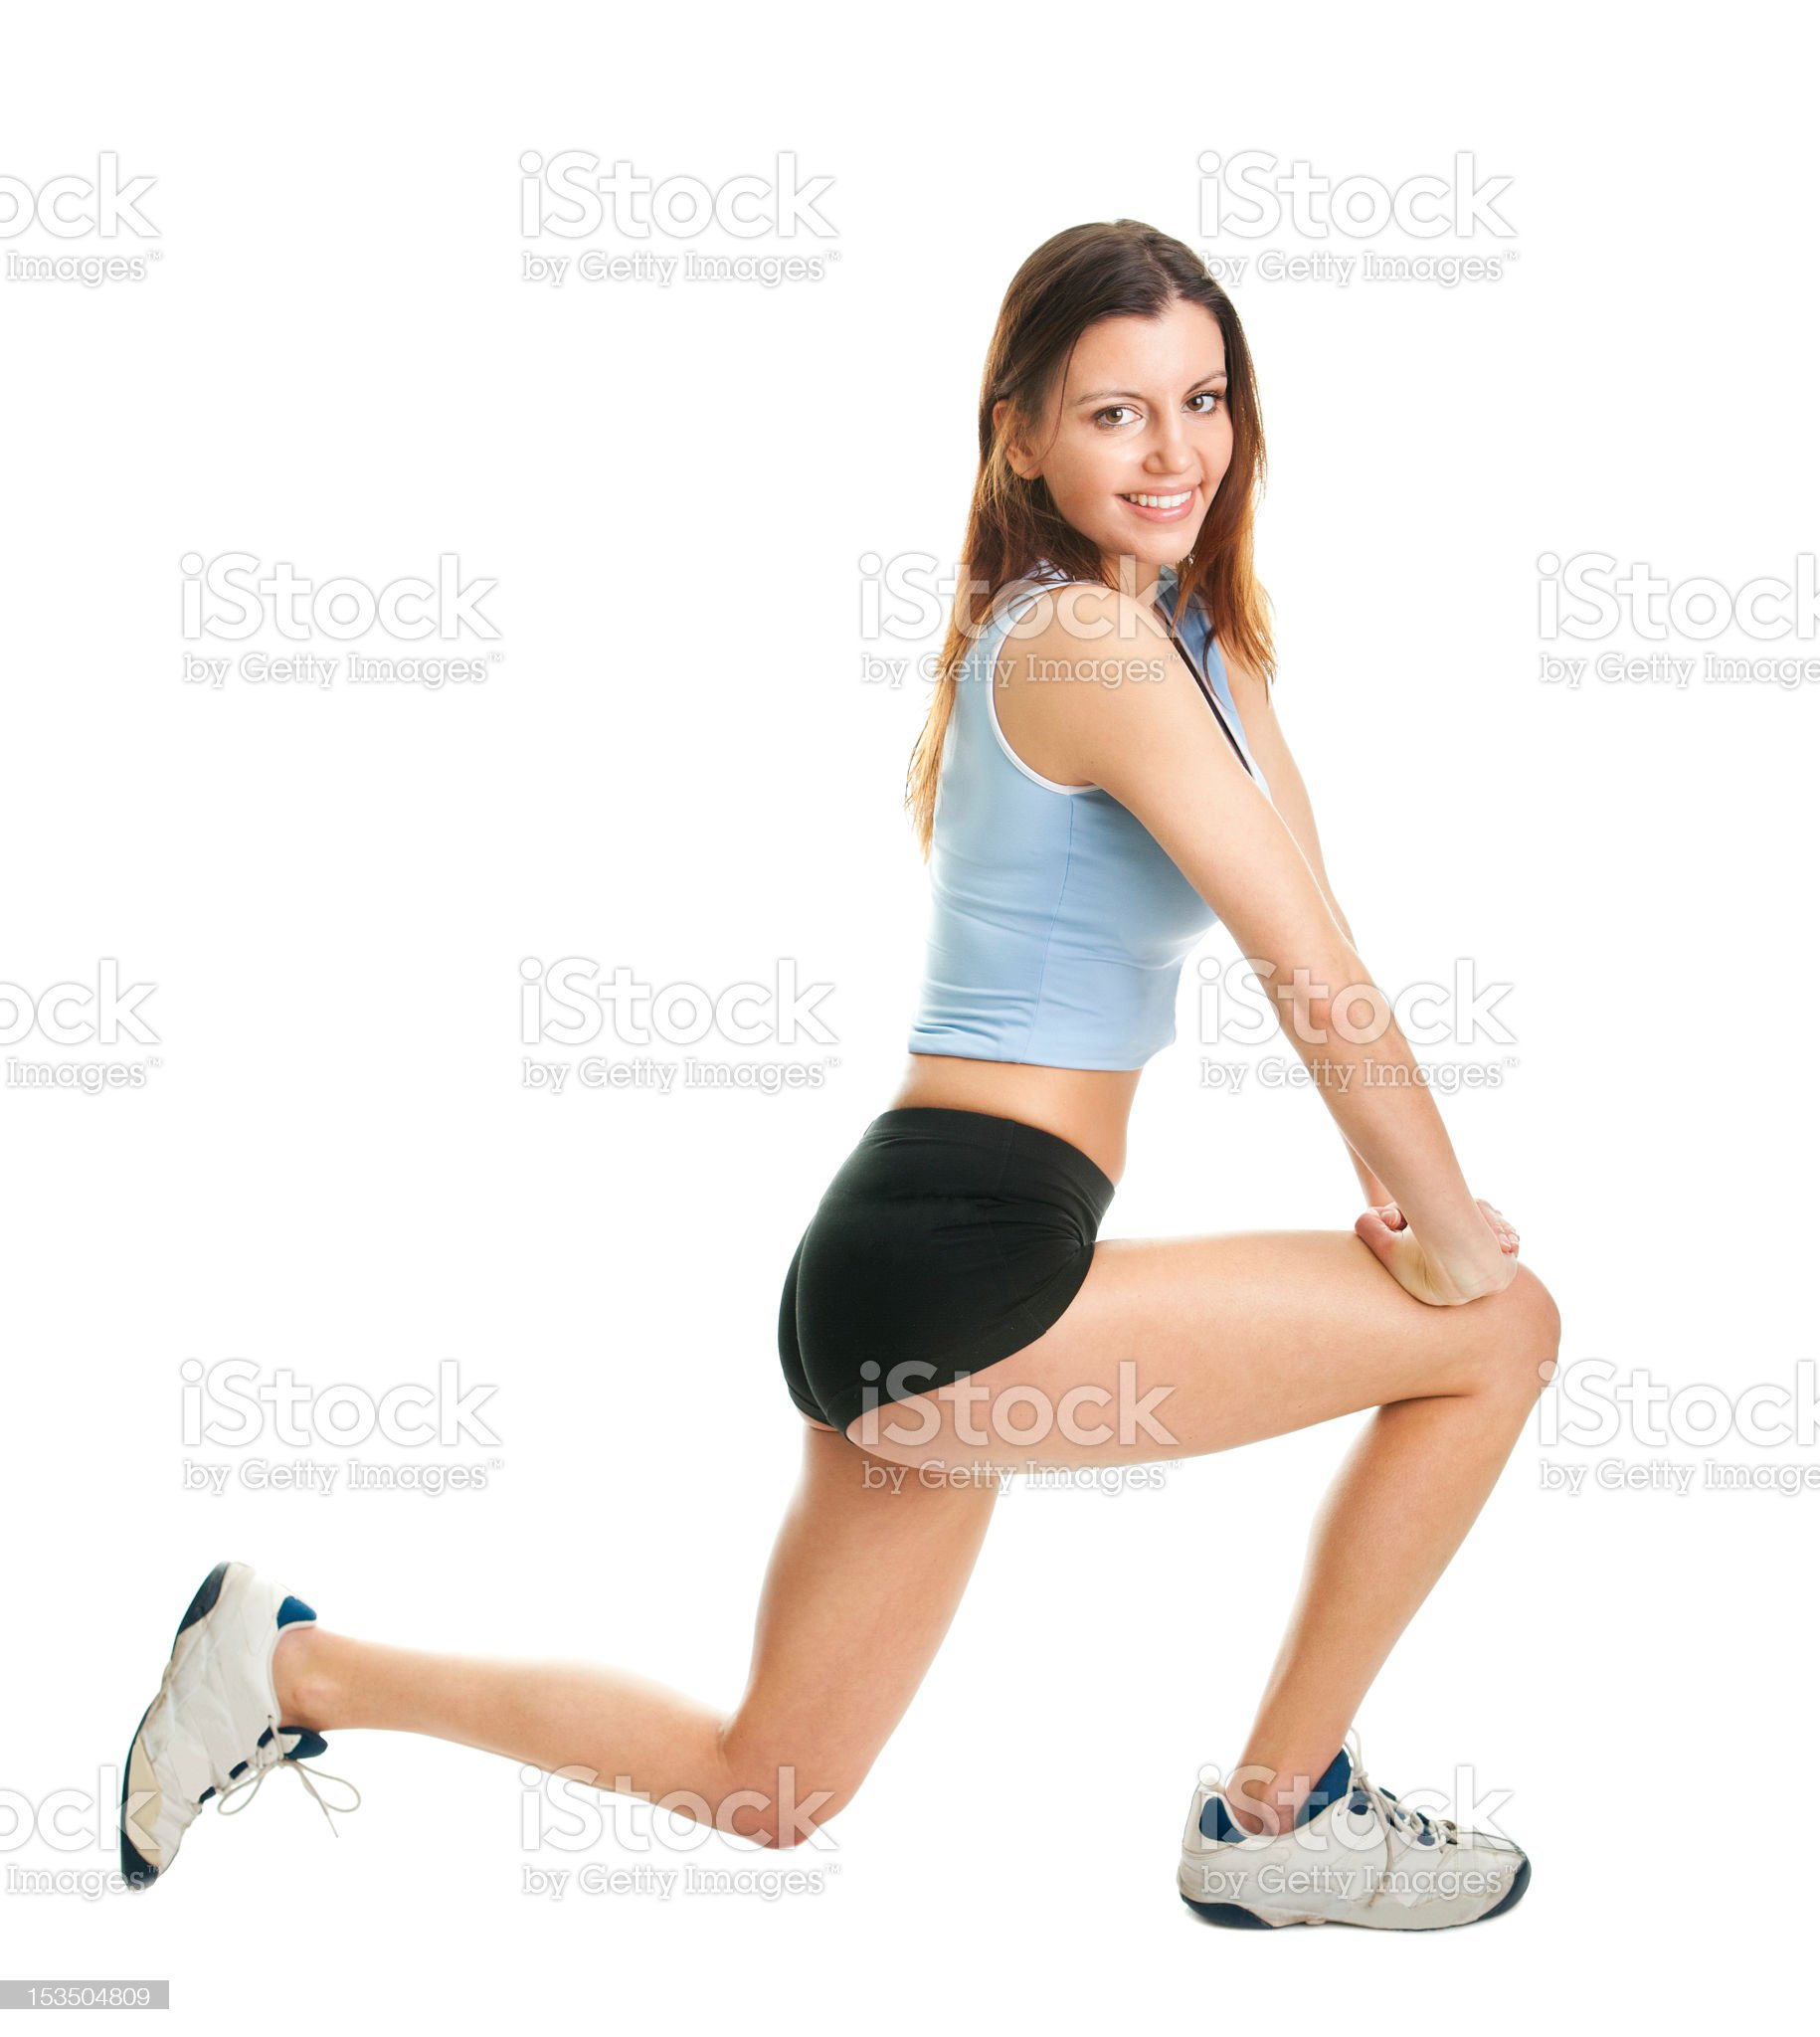 Fitness woman doing lunge exercise royalty-free stock photo